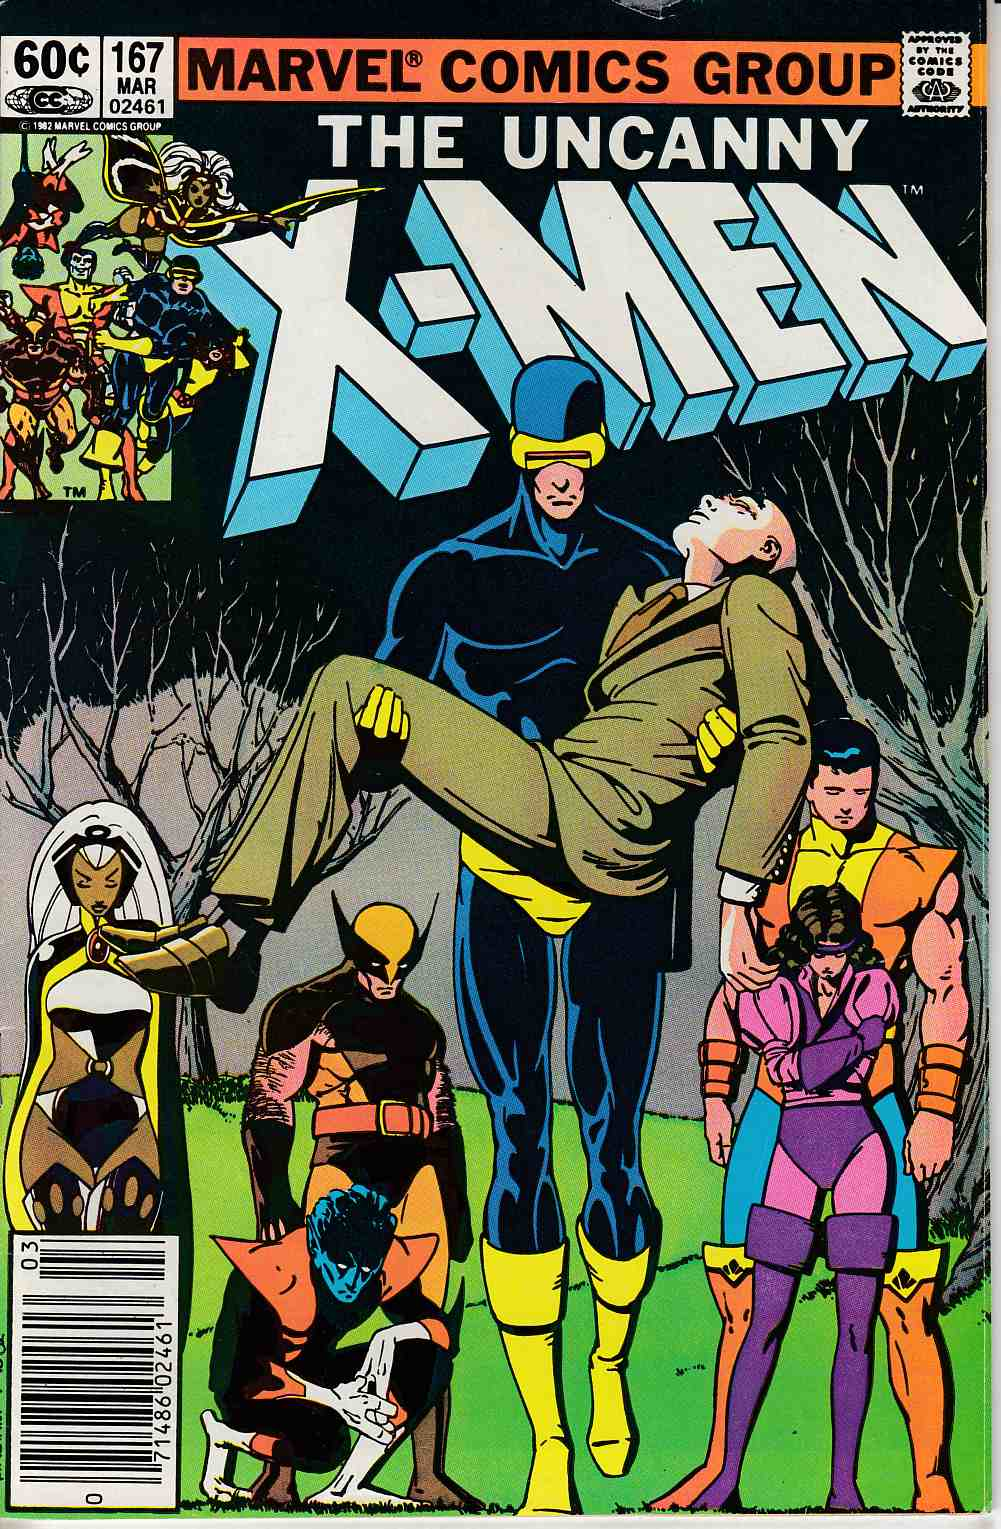 Uncanny X-Men #167 Newsstand Edition Very Good (4.0) [Marvel Comic]